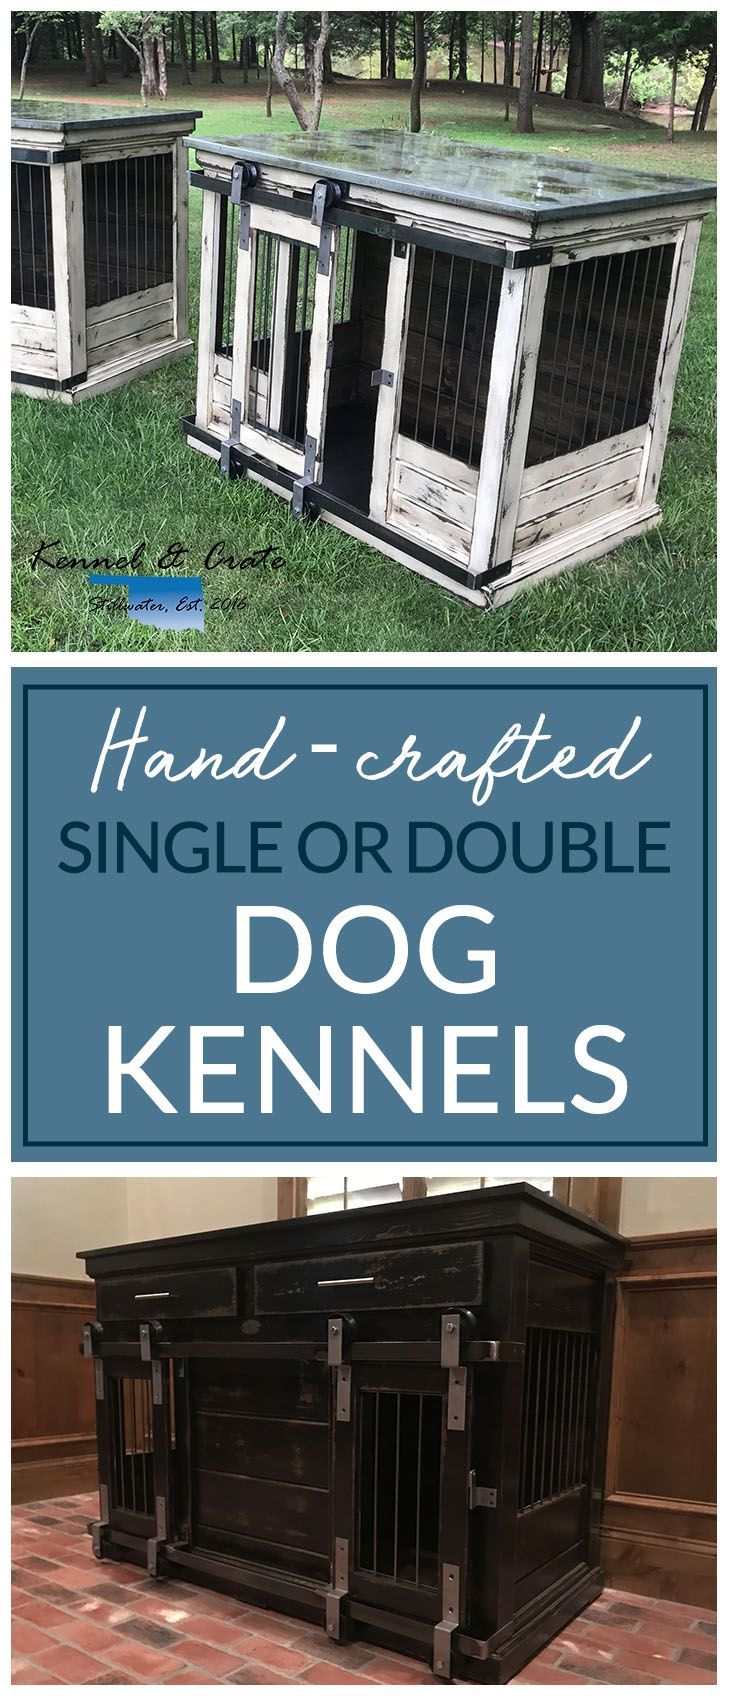 Designer indoor single or double dog kennels! Replace your wire dog crate with a beautiful piece of functional furniture! Great conversation piece! #Kennelandcrate#Customorders#Stylishdogkennel#dogkennel #Dog